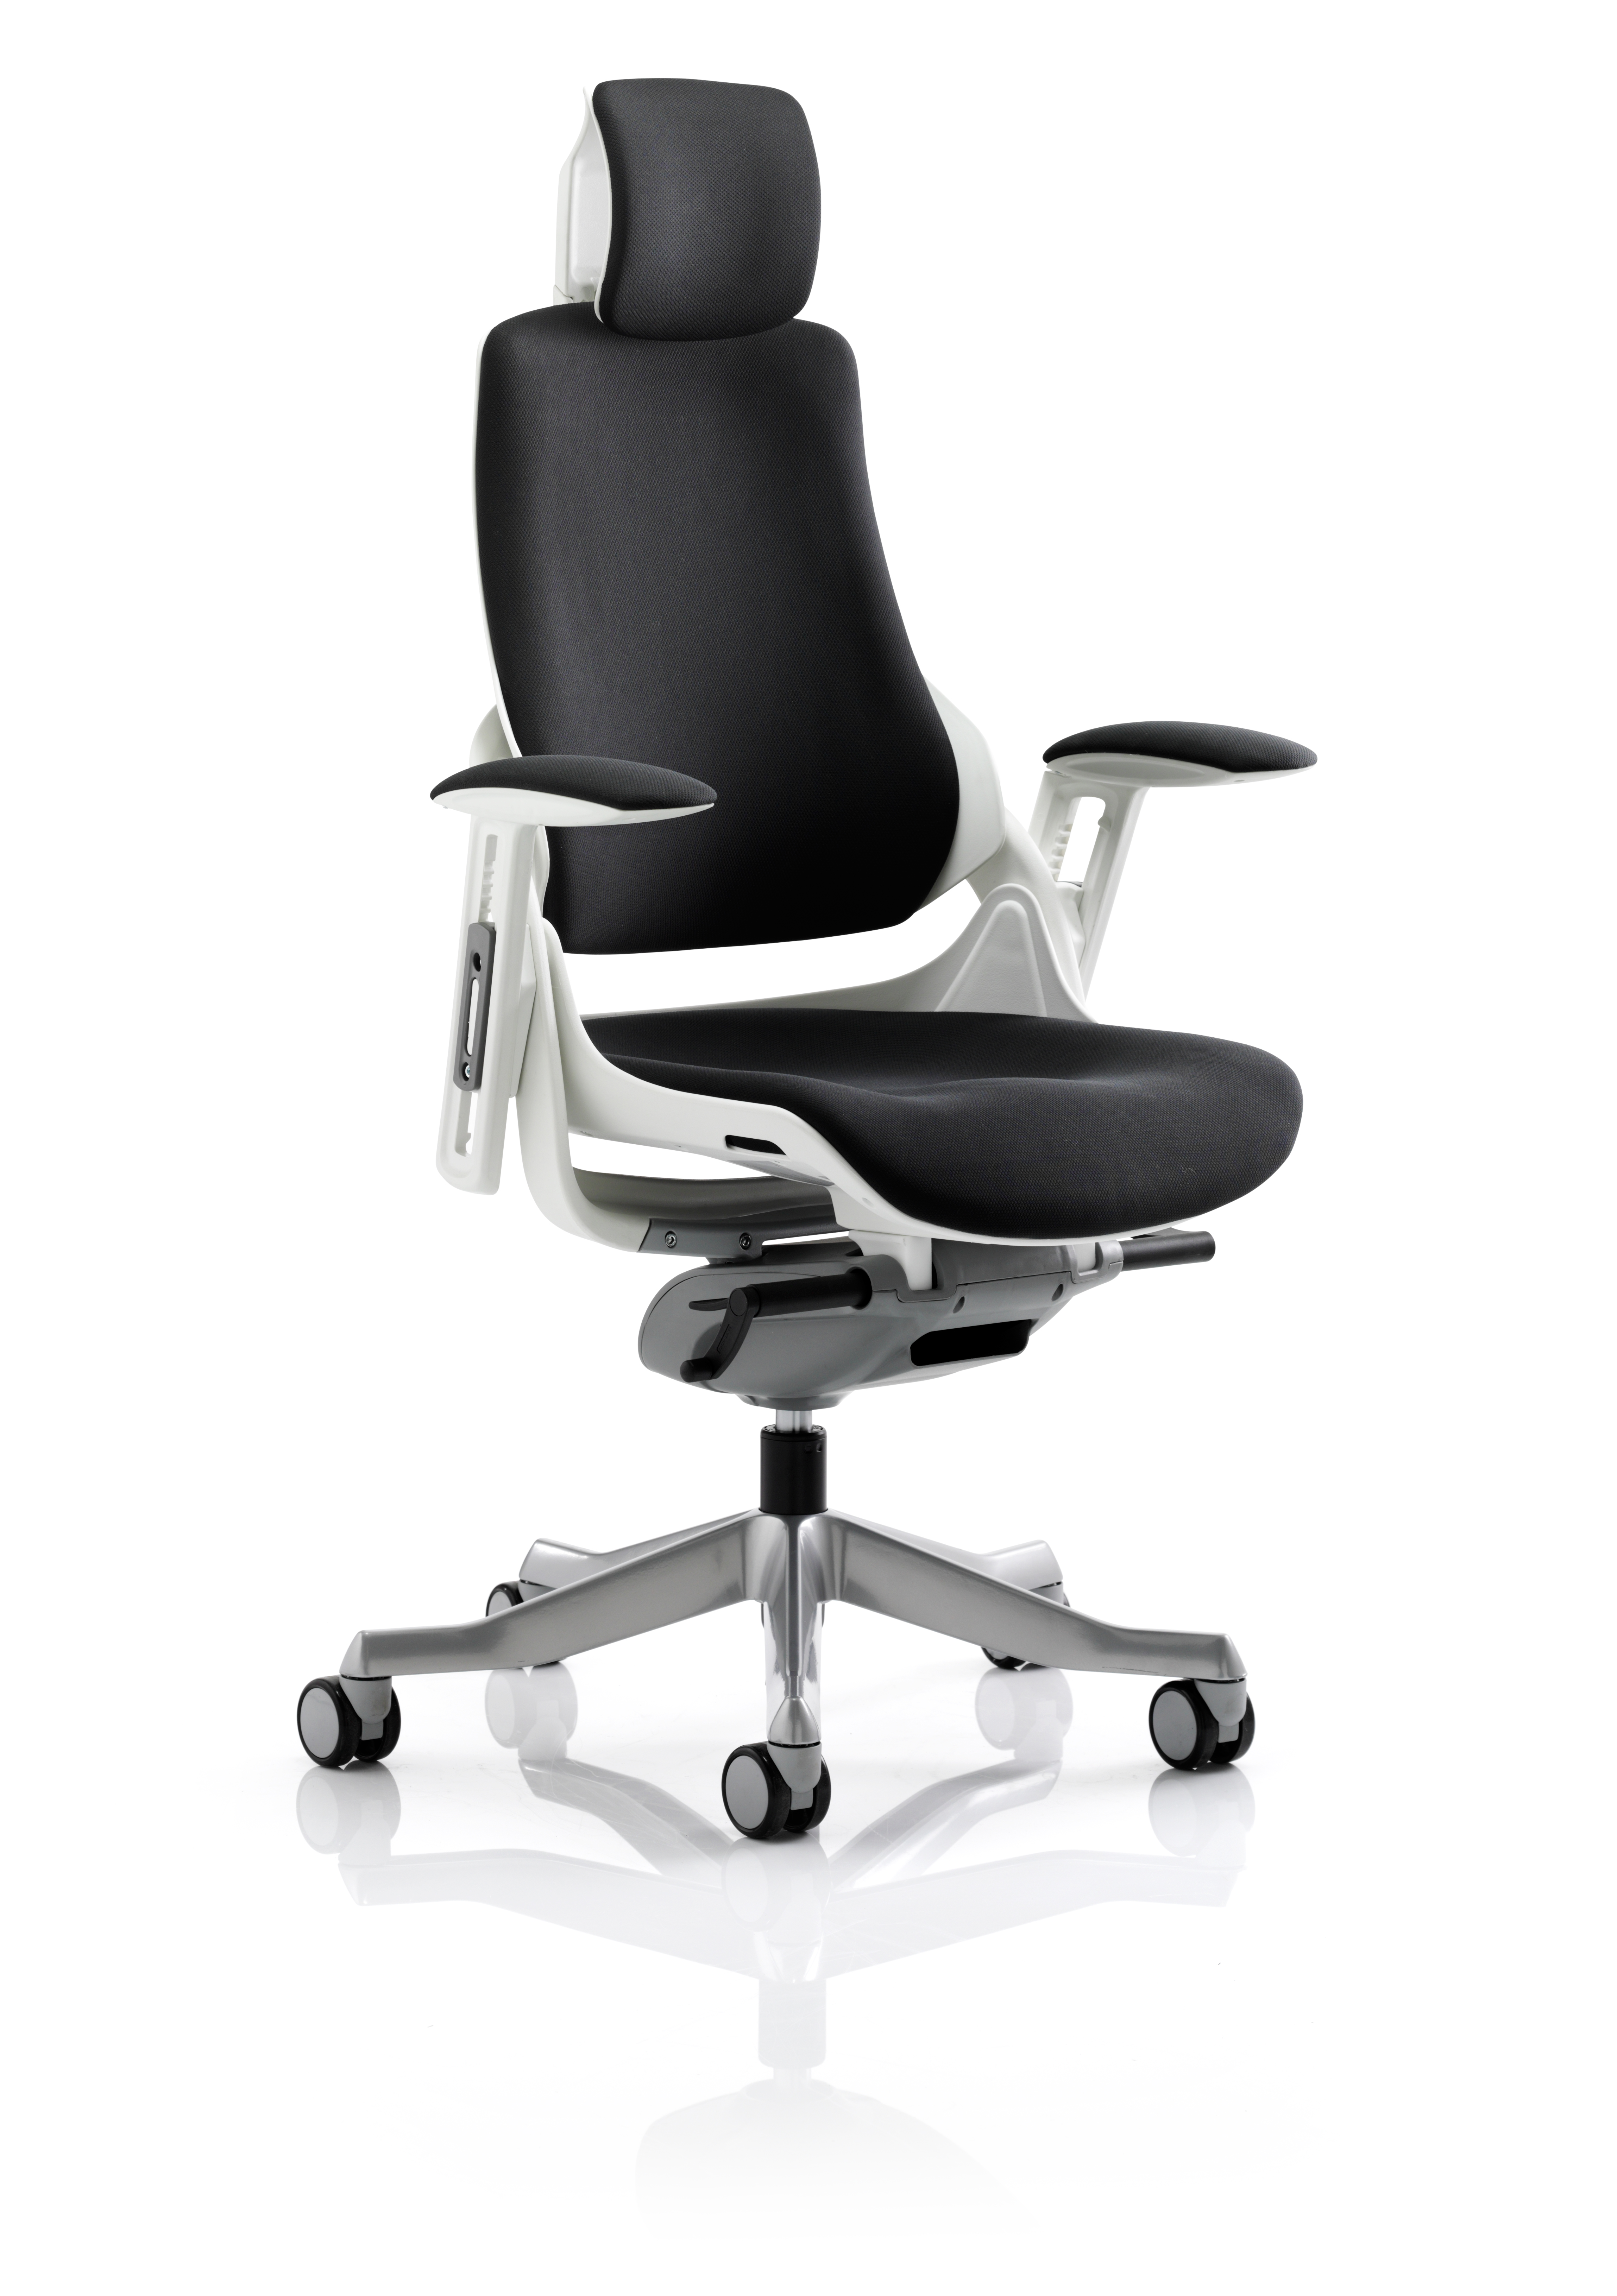 Executive Chairs Zure Black Fabric With Arms With Headrest KC0161